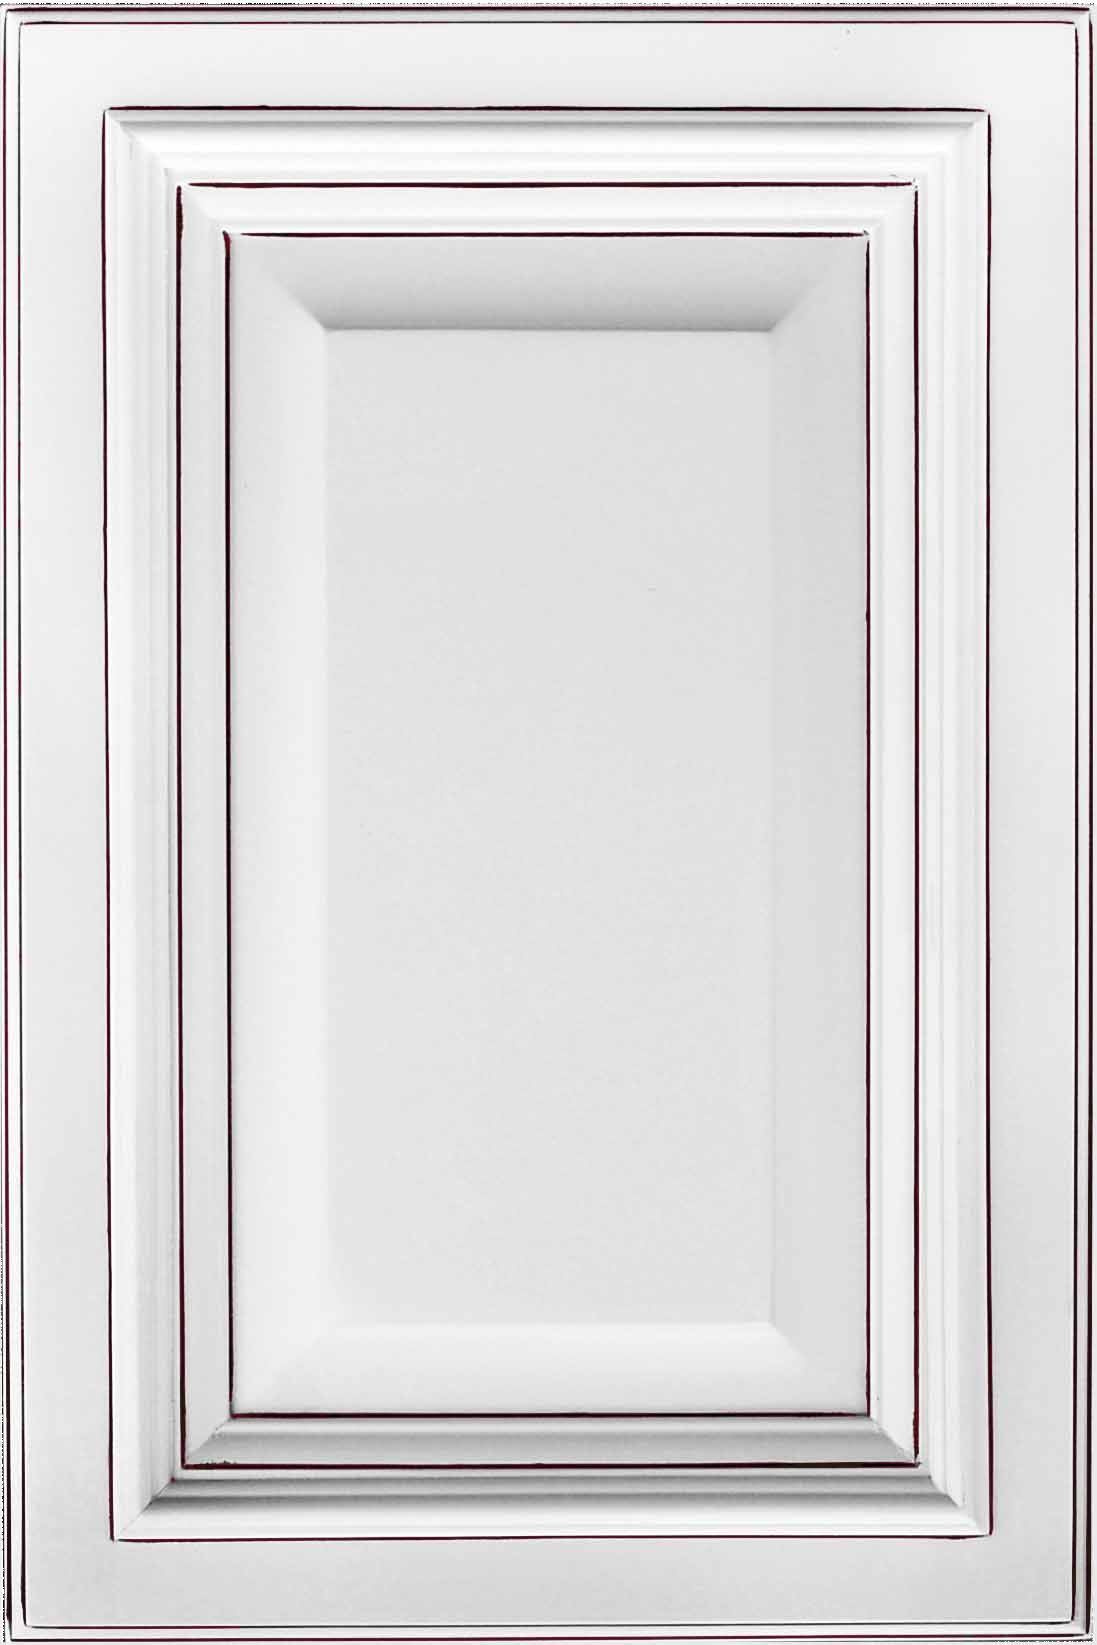 Dakota White Rta Kitchen Cabinets: White Deluxe Chocolate W/ Pen Glaze